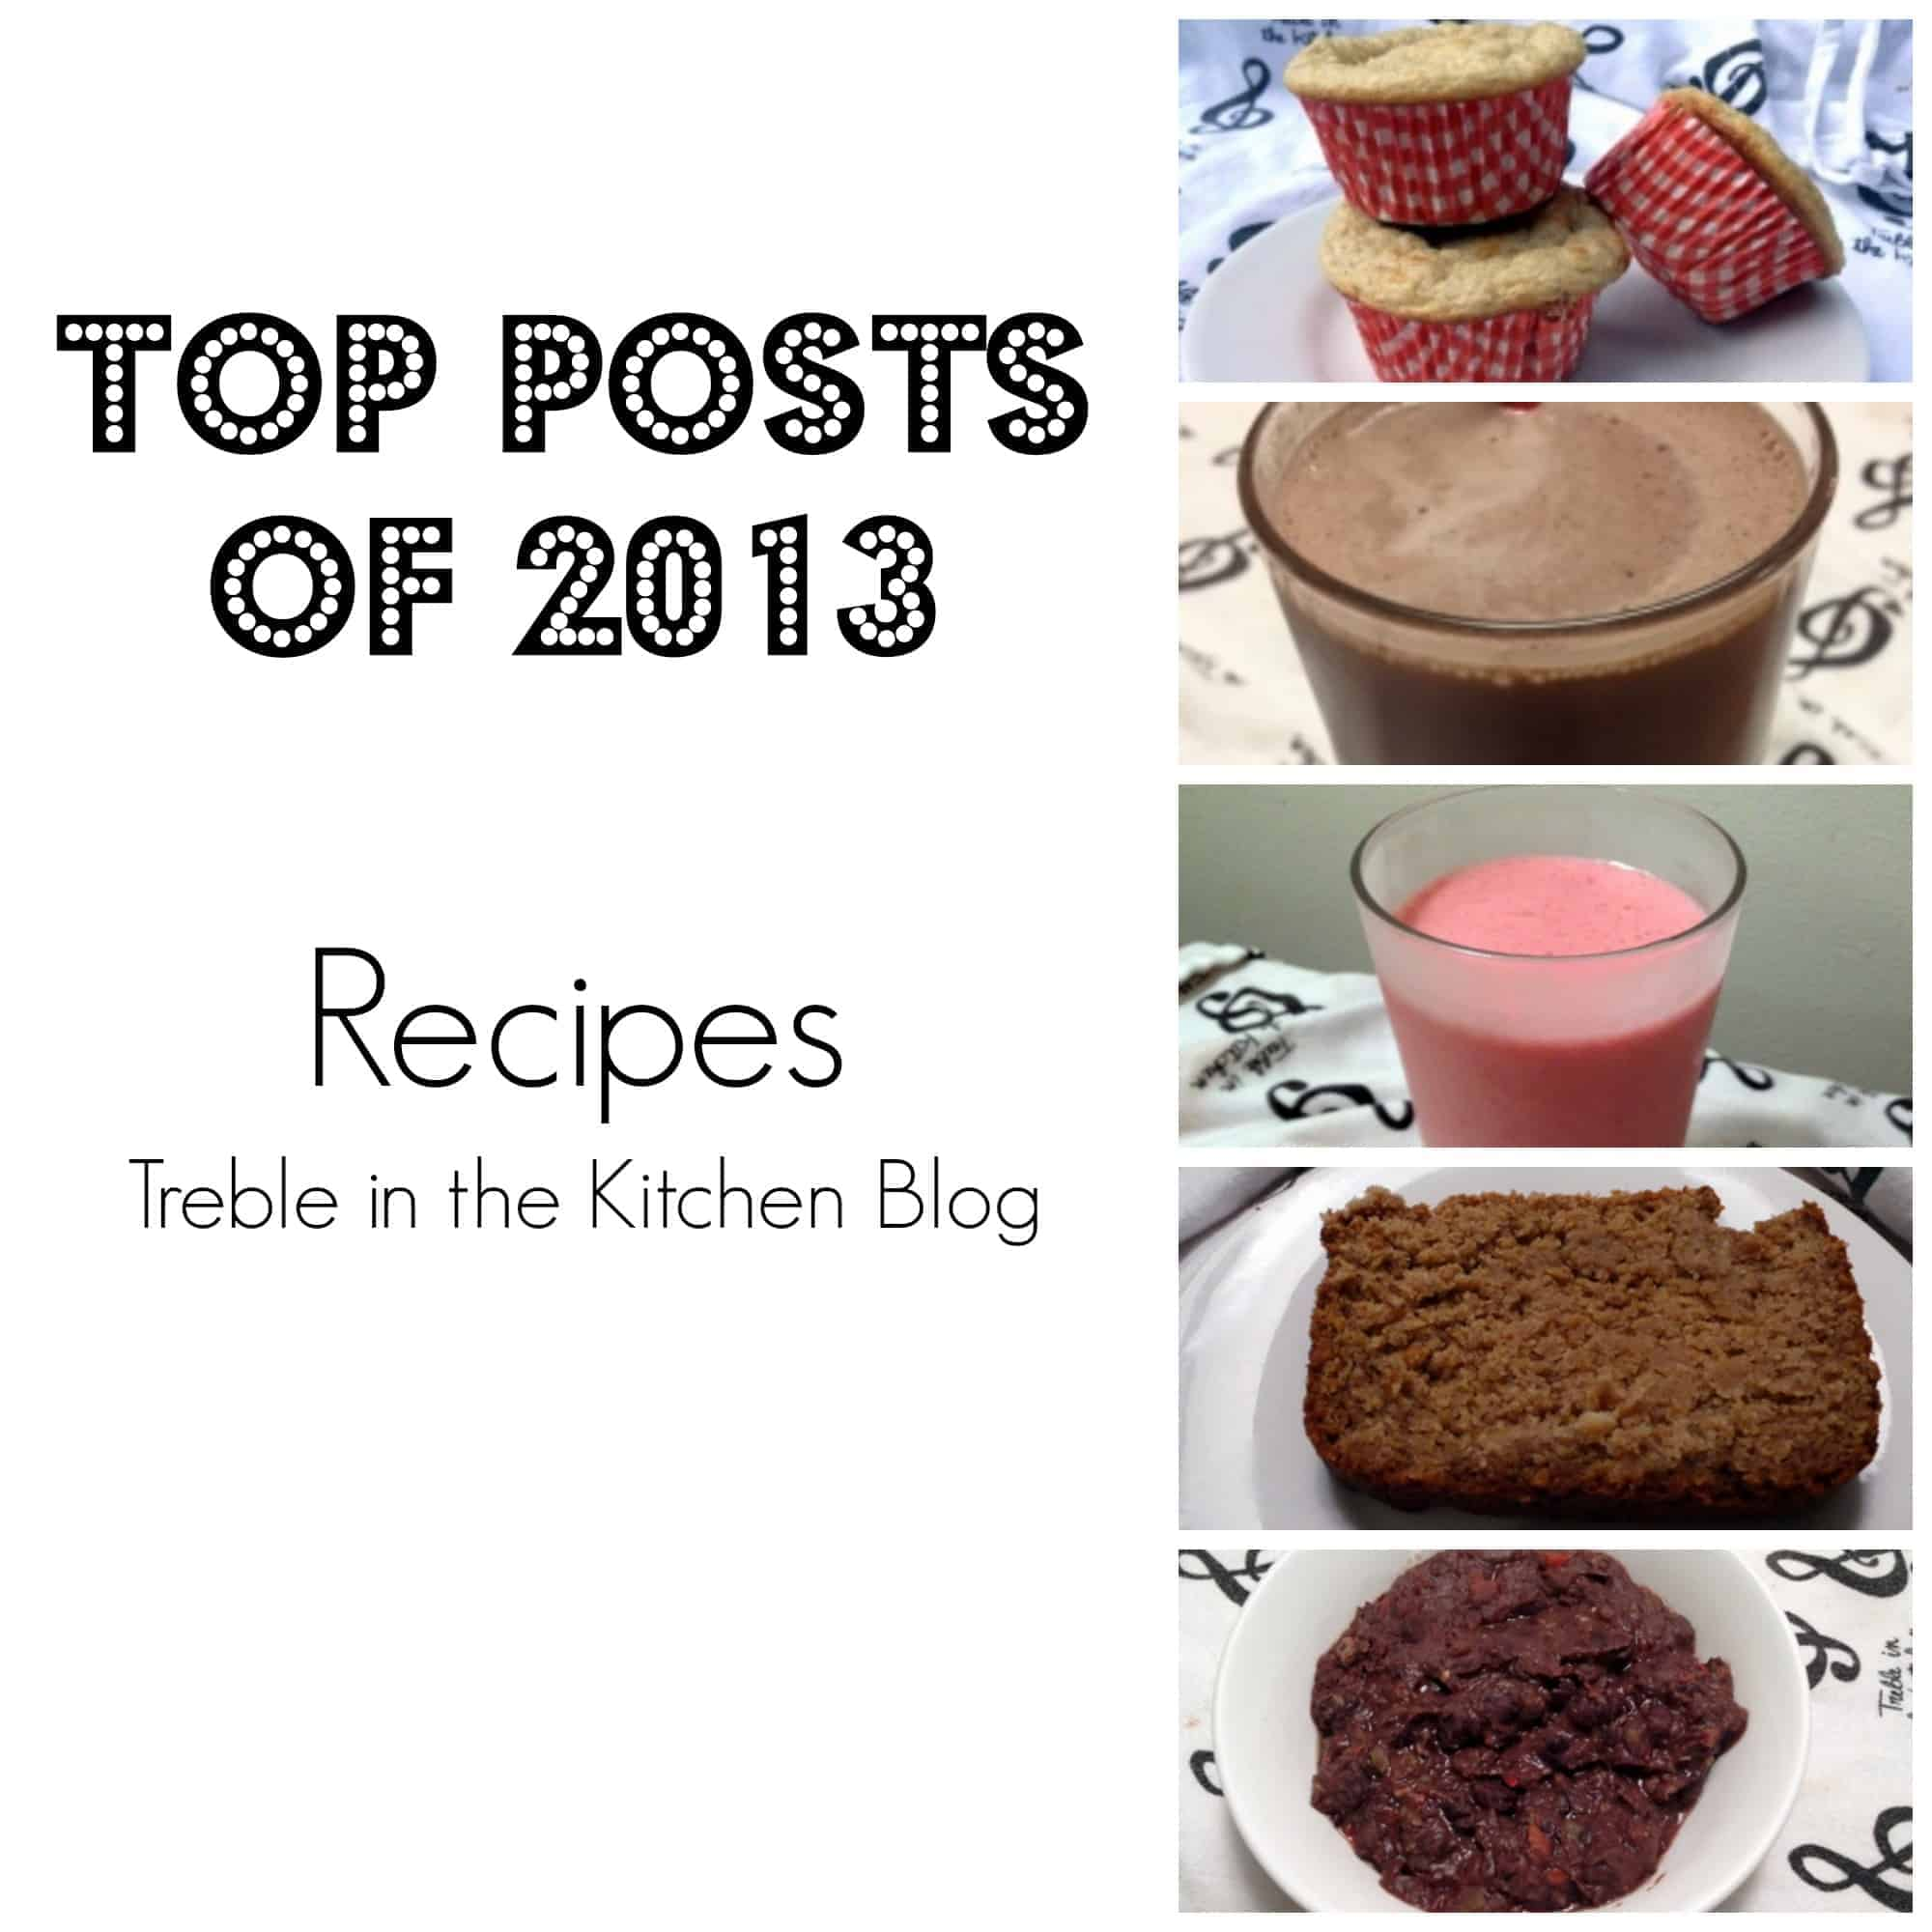 Top Posts Recipes via Treble in the Kitchen Blog